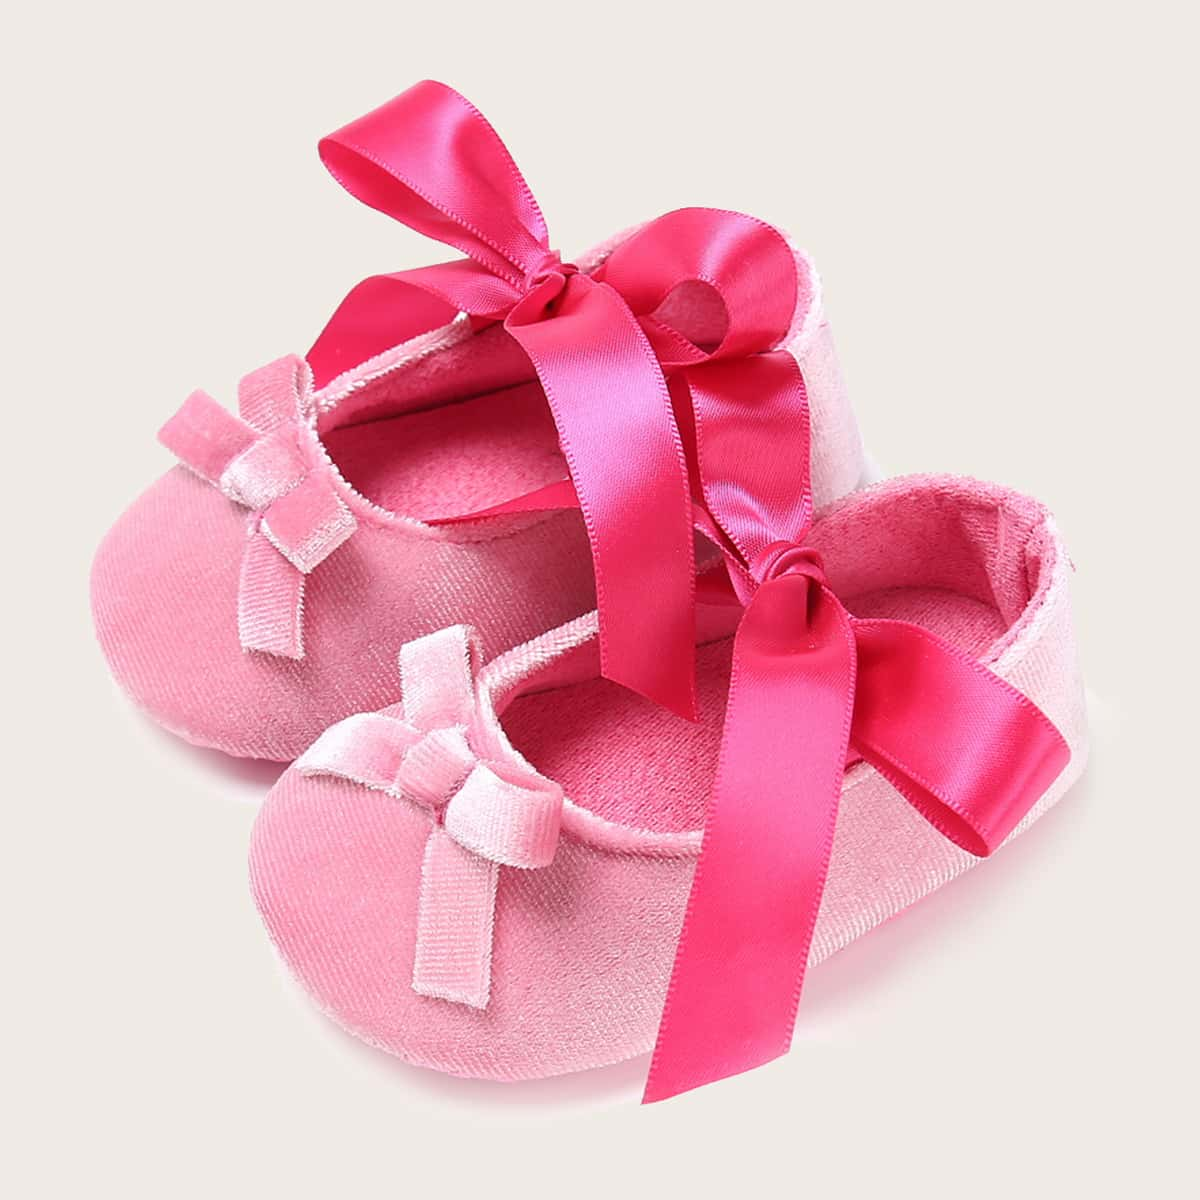 SHEIN Baby Girl Bow Decor Wide Fit Flats